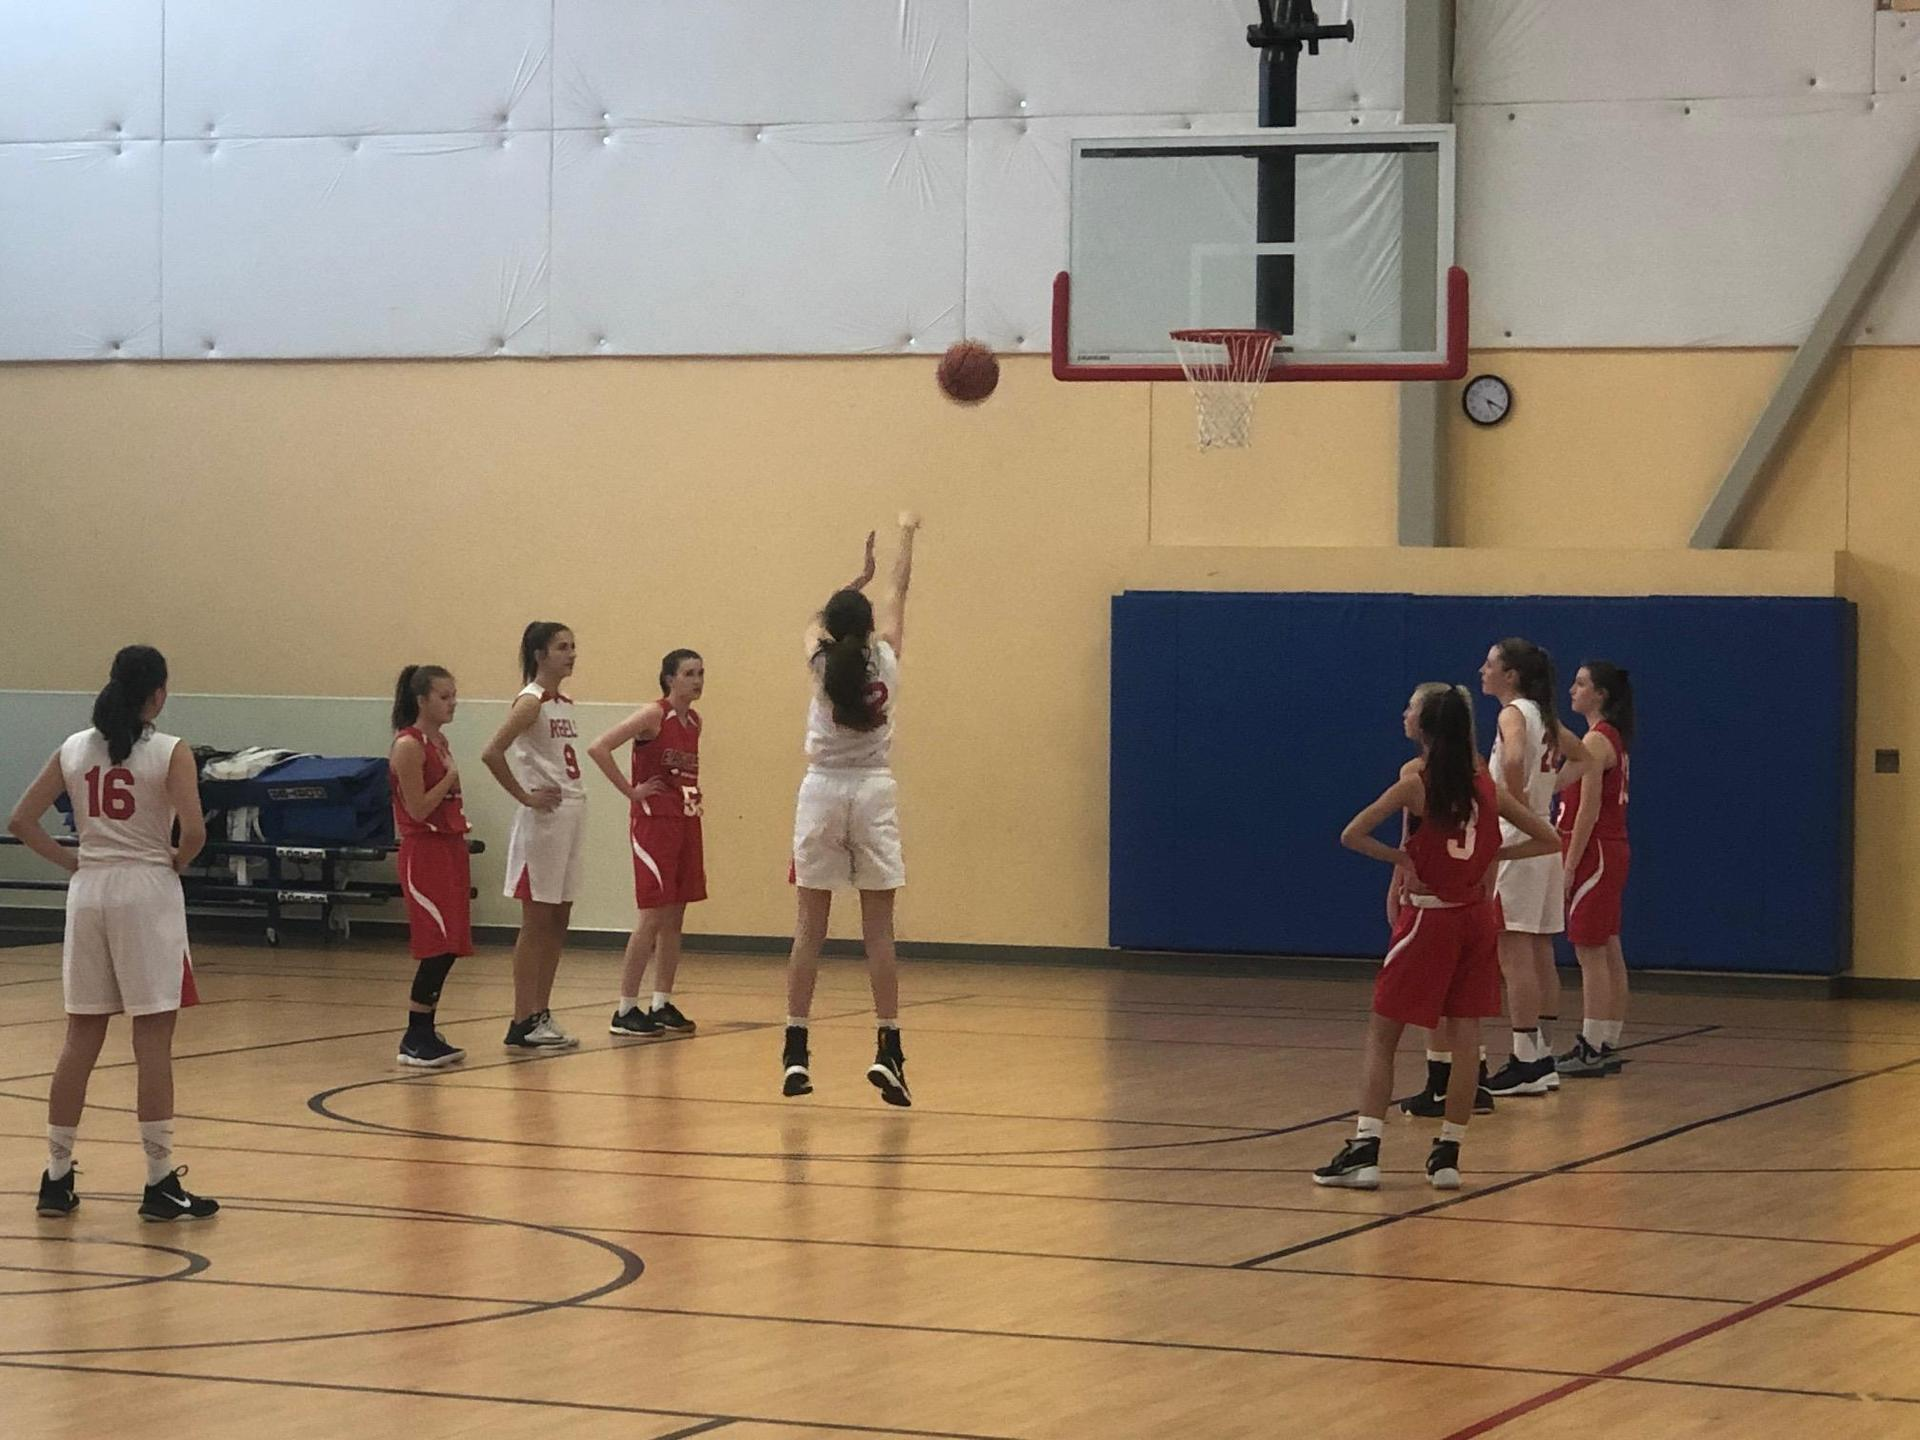 Girls basketball player shooting free throw away from camera